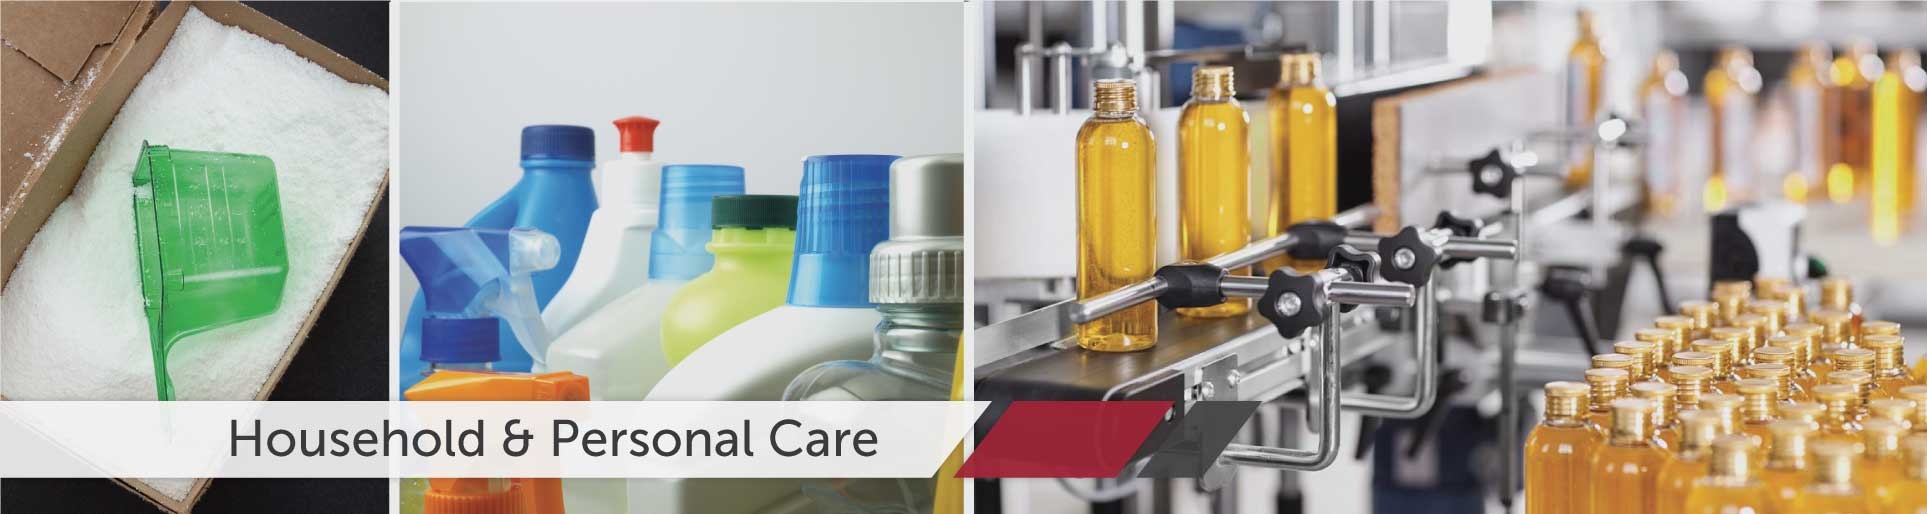 Household-Personal-Care